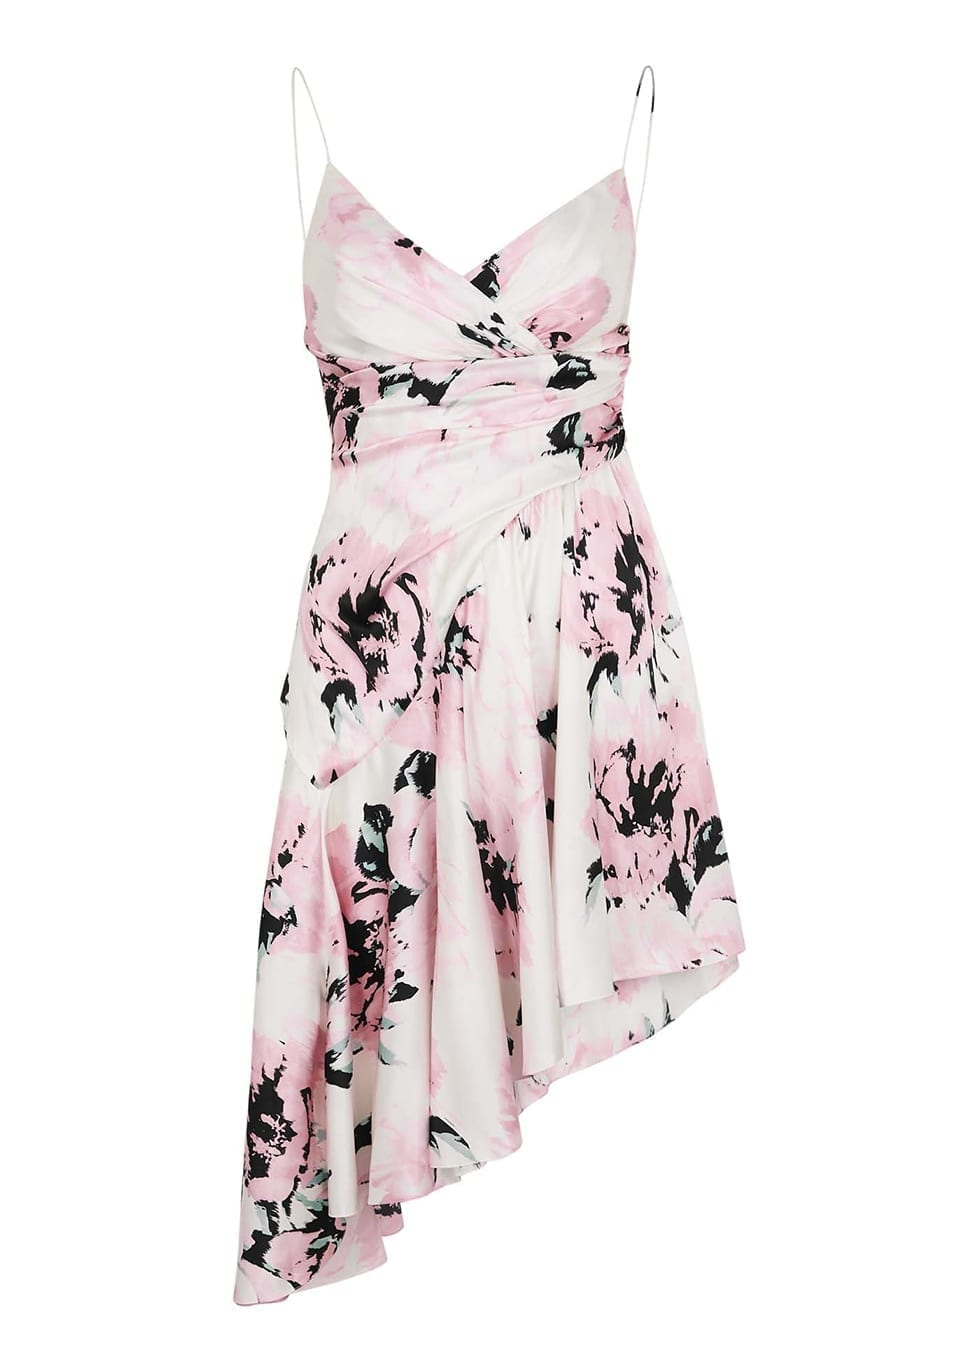 ALEXANDRE VAUTHIER Pink Floral-print Cotton Dress